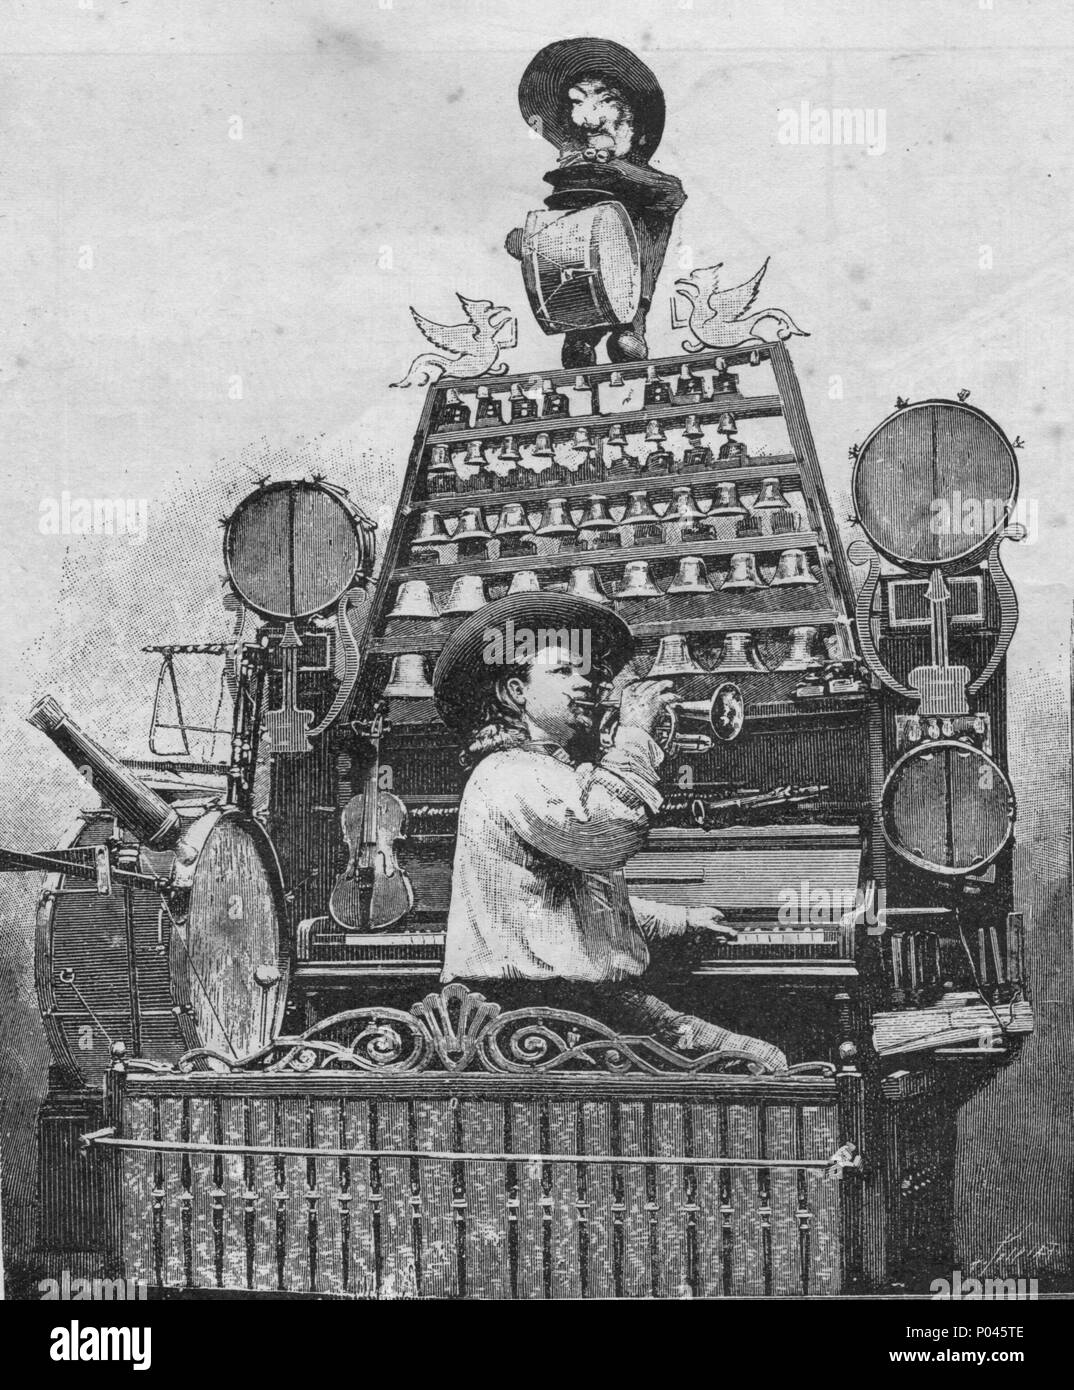 One man orchestra. Vintage engraved illustration. Published in magazine in 1900. - Stock Image